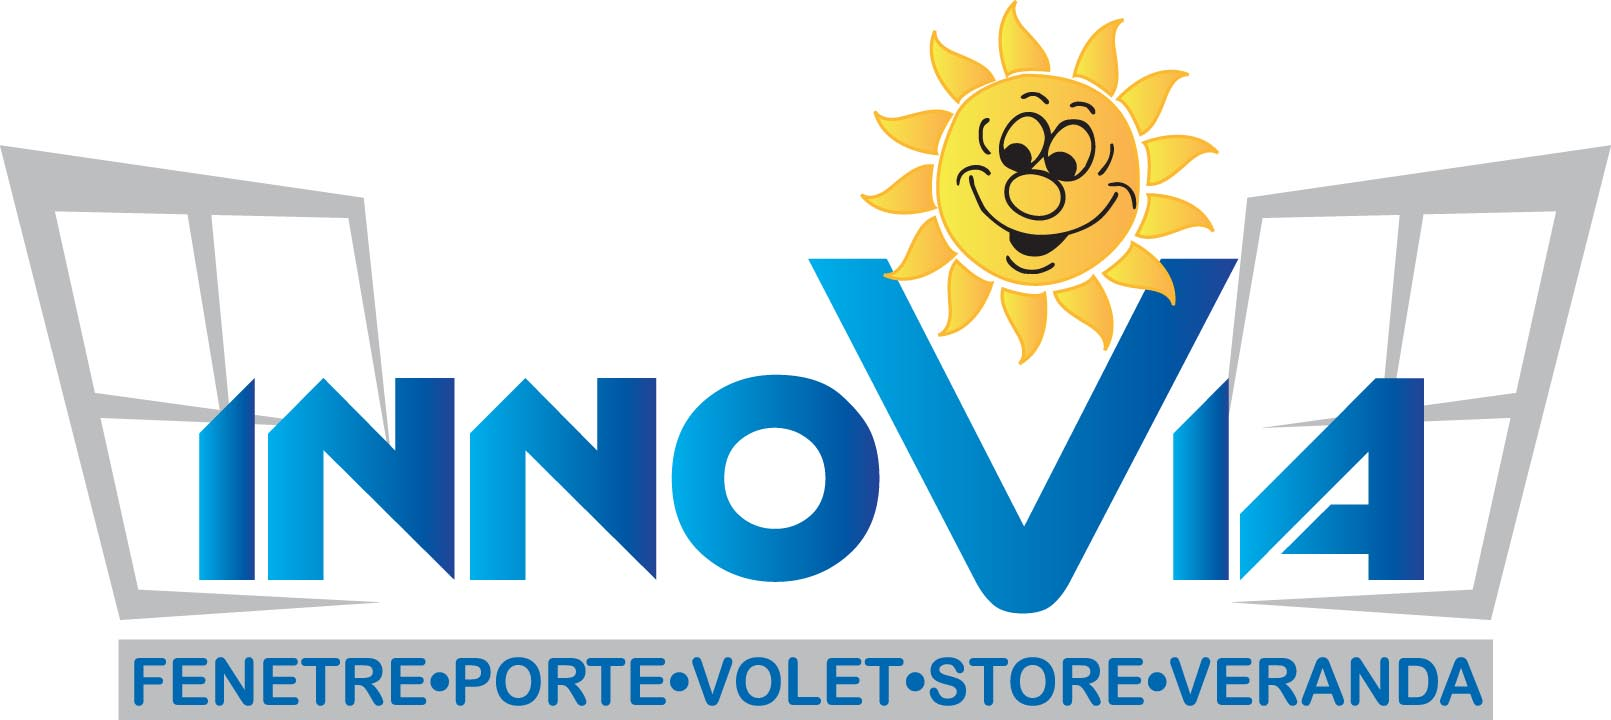 Innovia – Menuiseries, fenêtres, volets roulants